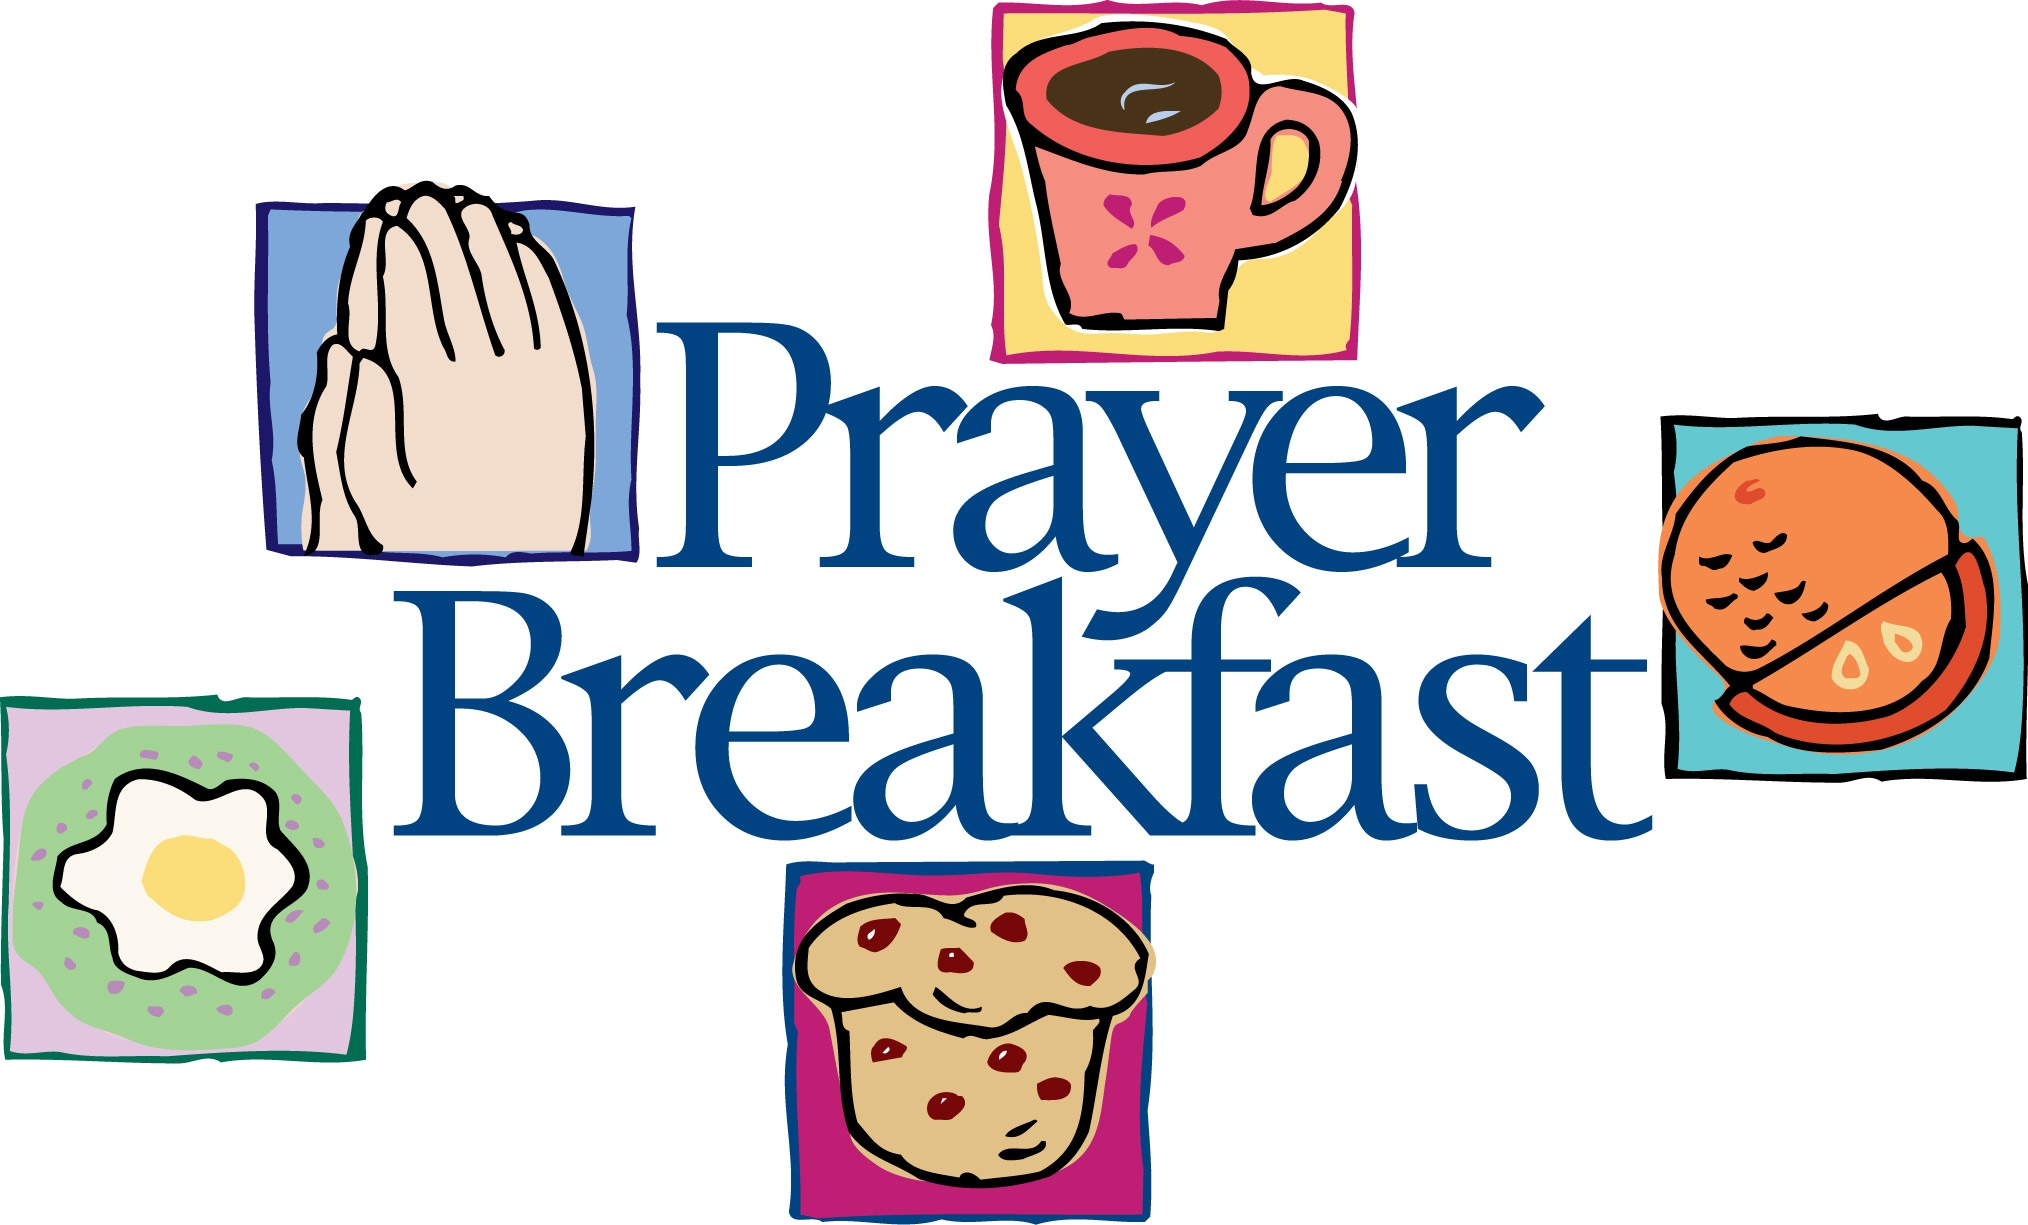 Prayer Breakfast Clipart.